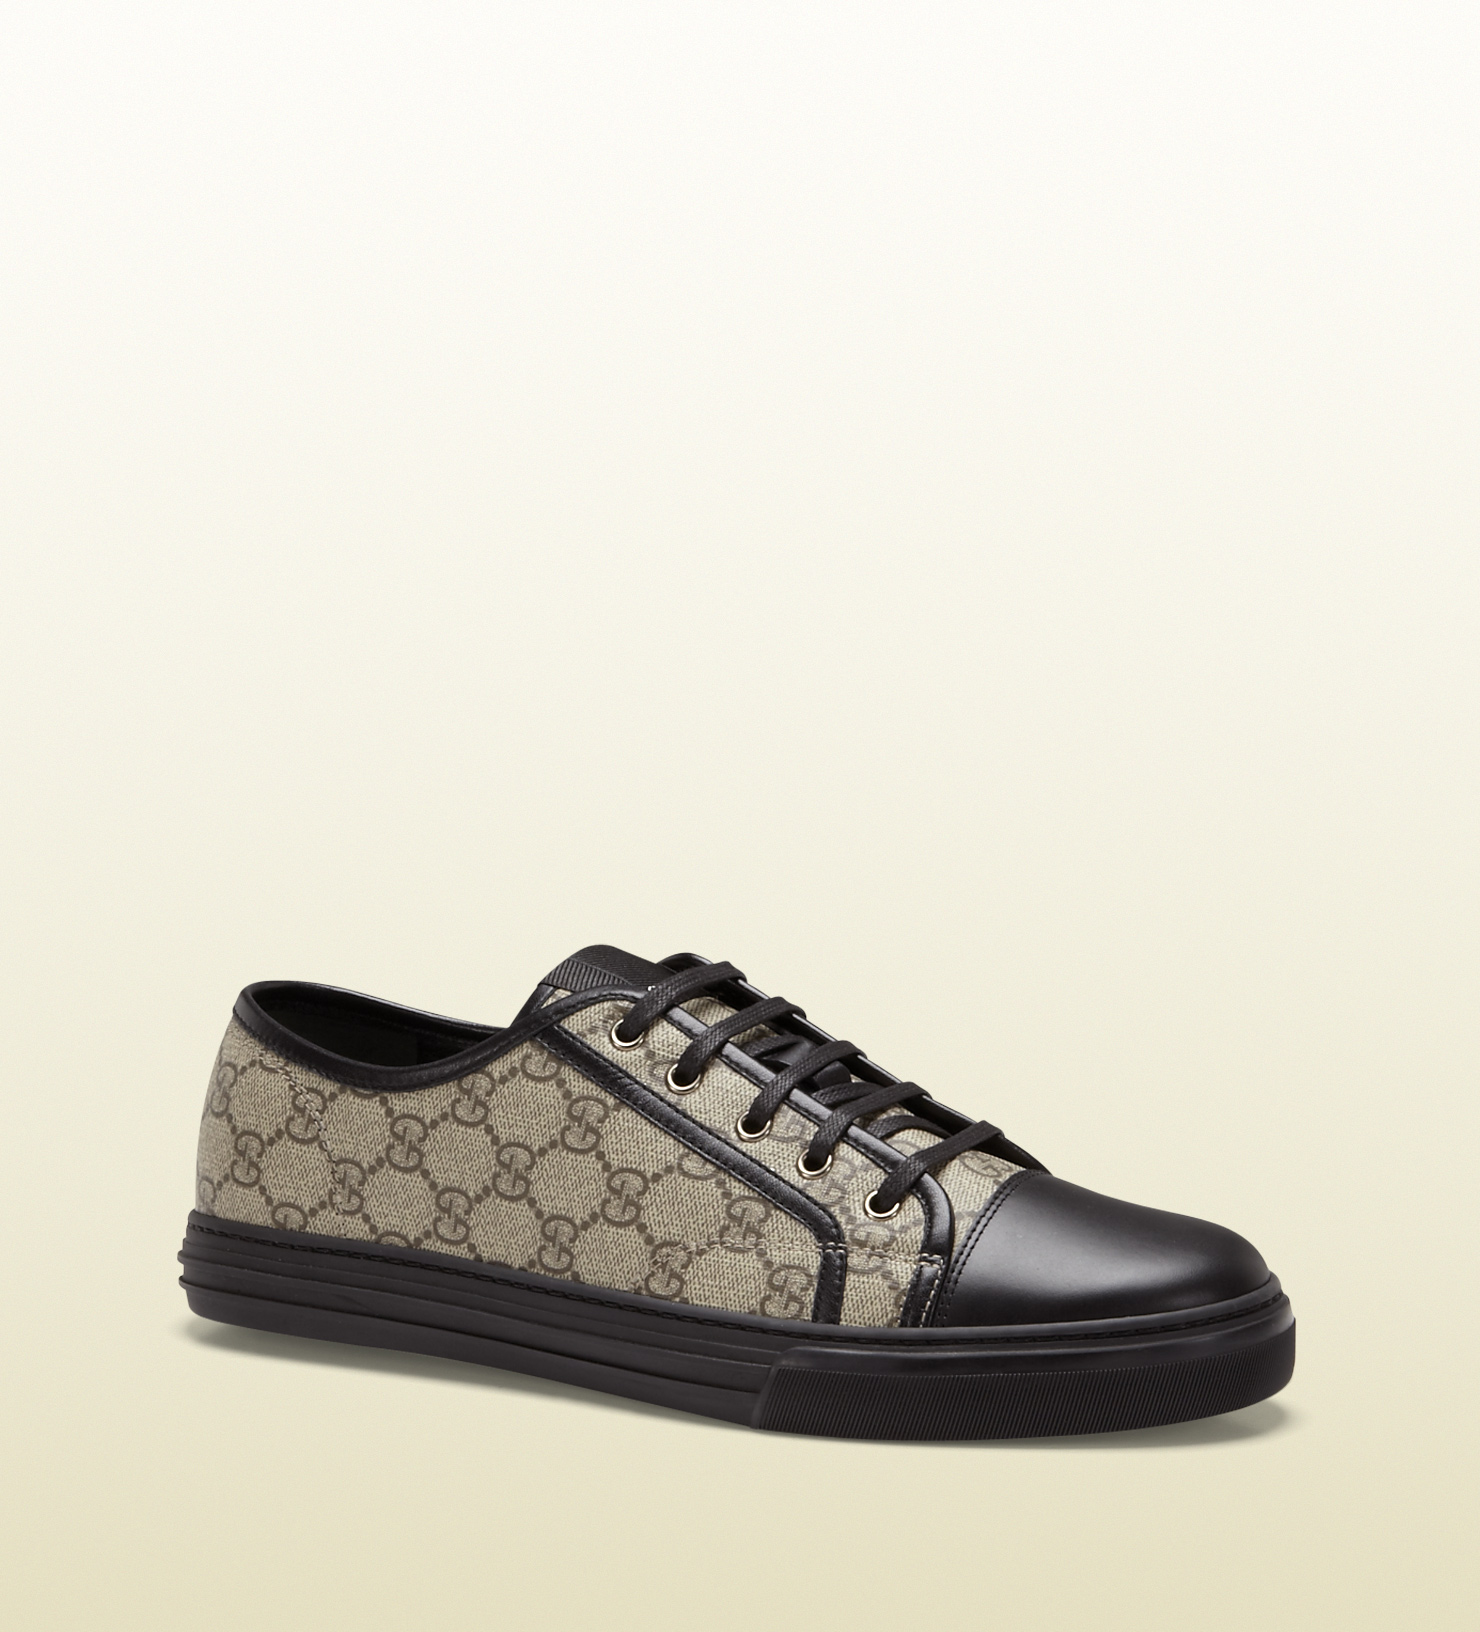 Lyst Gucci Gg Supreme Canvas Lowtop Sneaker In Black For Men